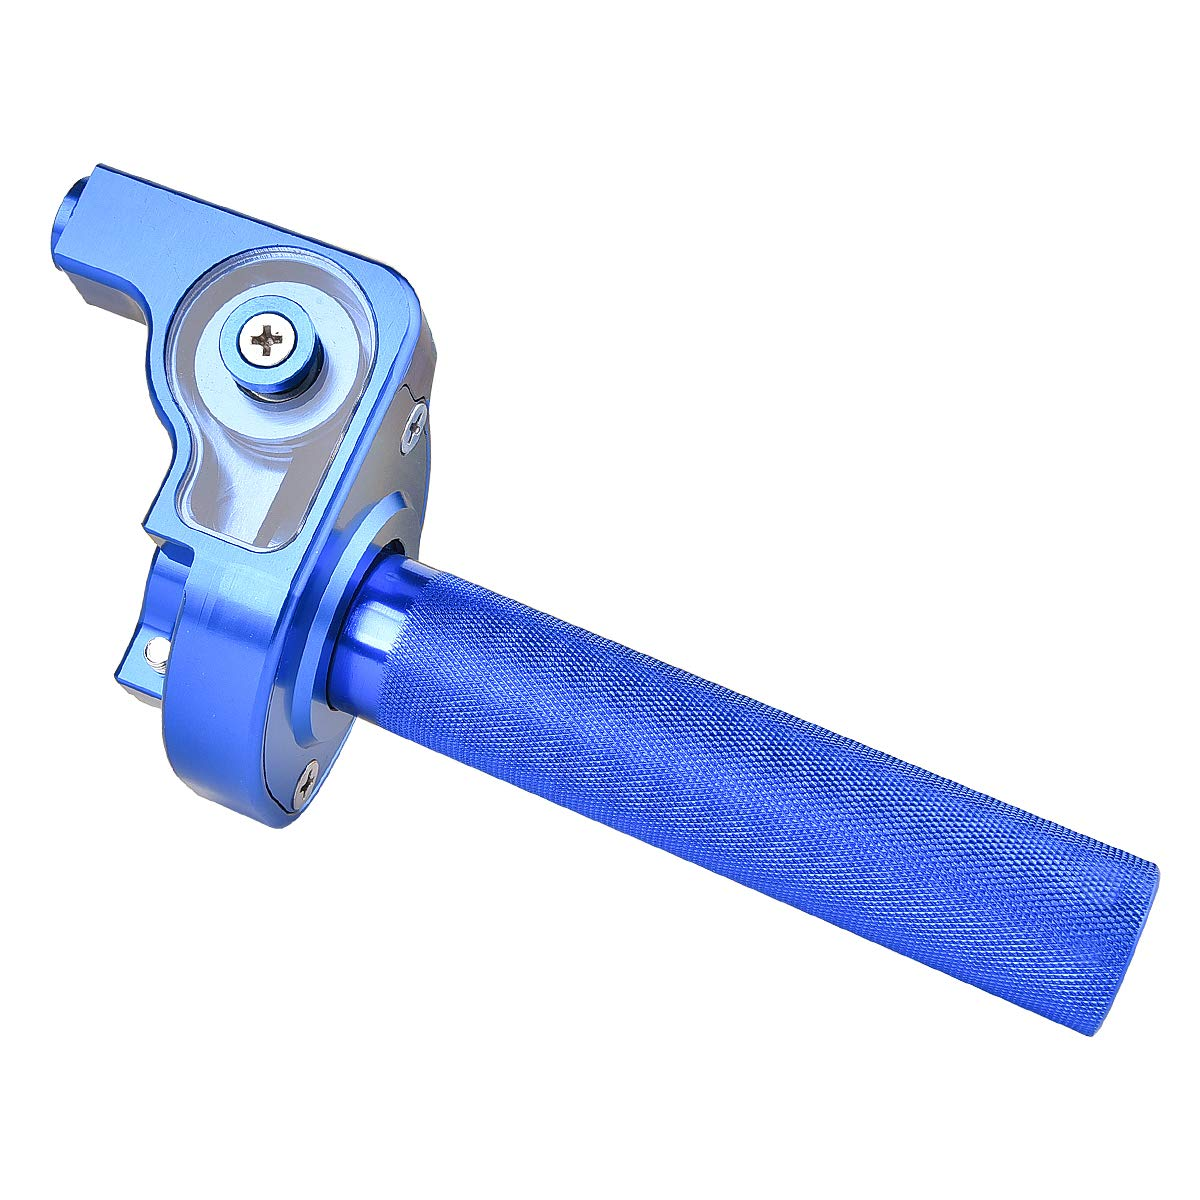 1//4 Turn Fast Action Throttle Assembly CNC Anodized Aluminum for CR80 CR85 CR125 CR250 CR500 BLUE MTATCN